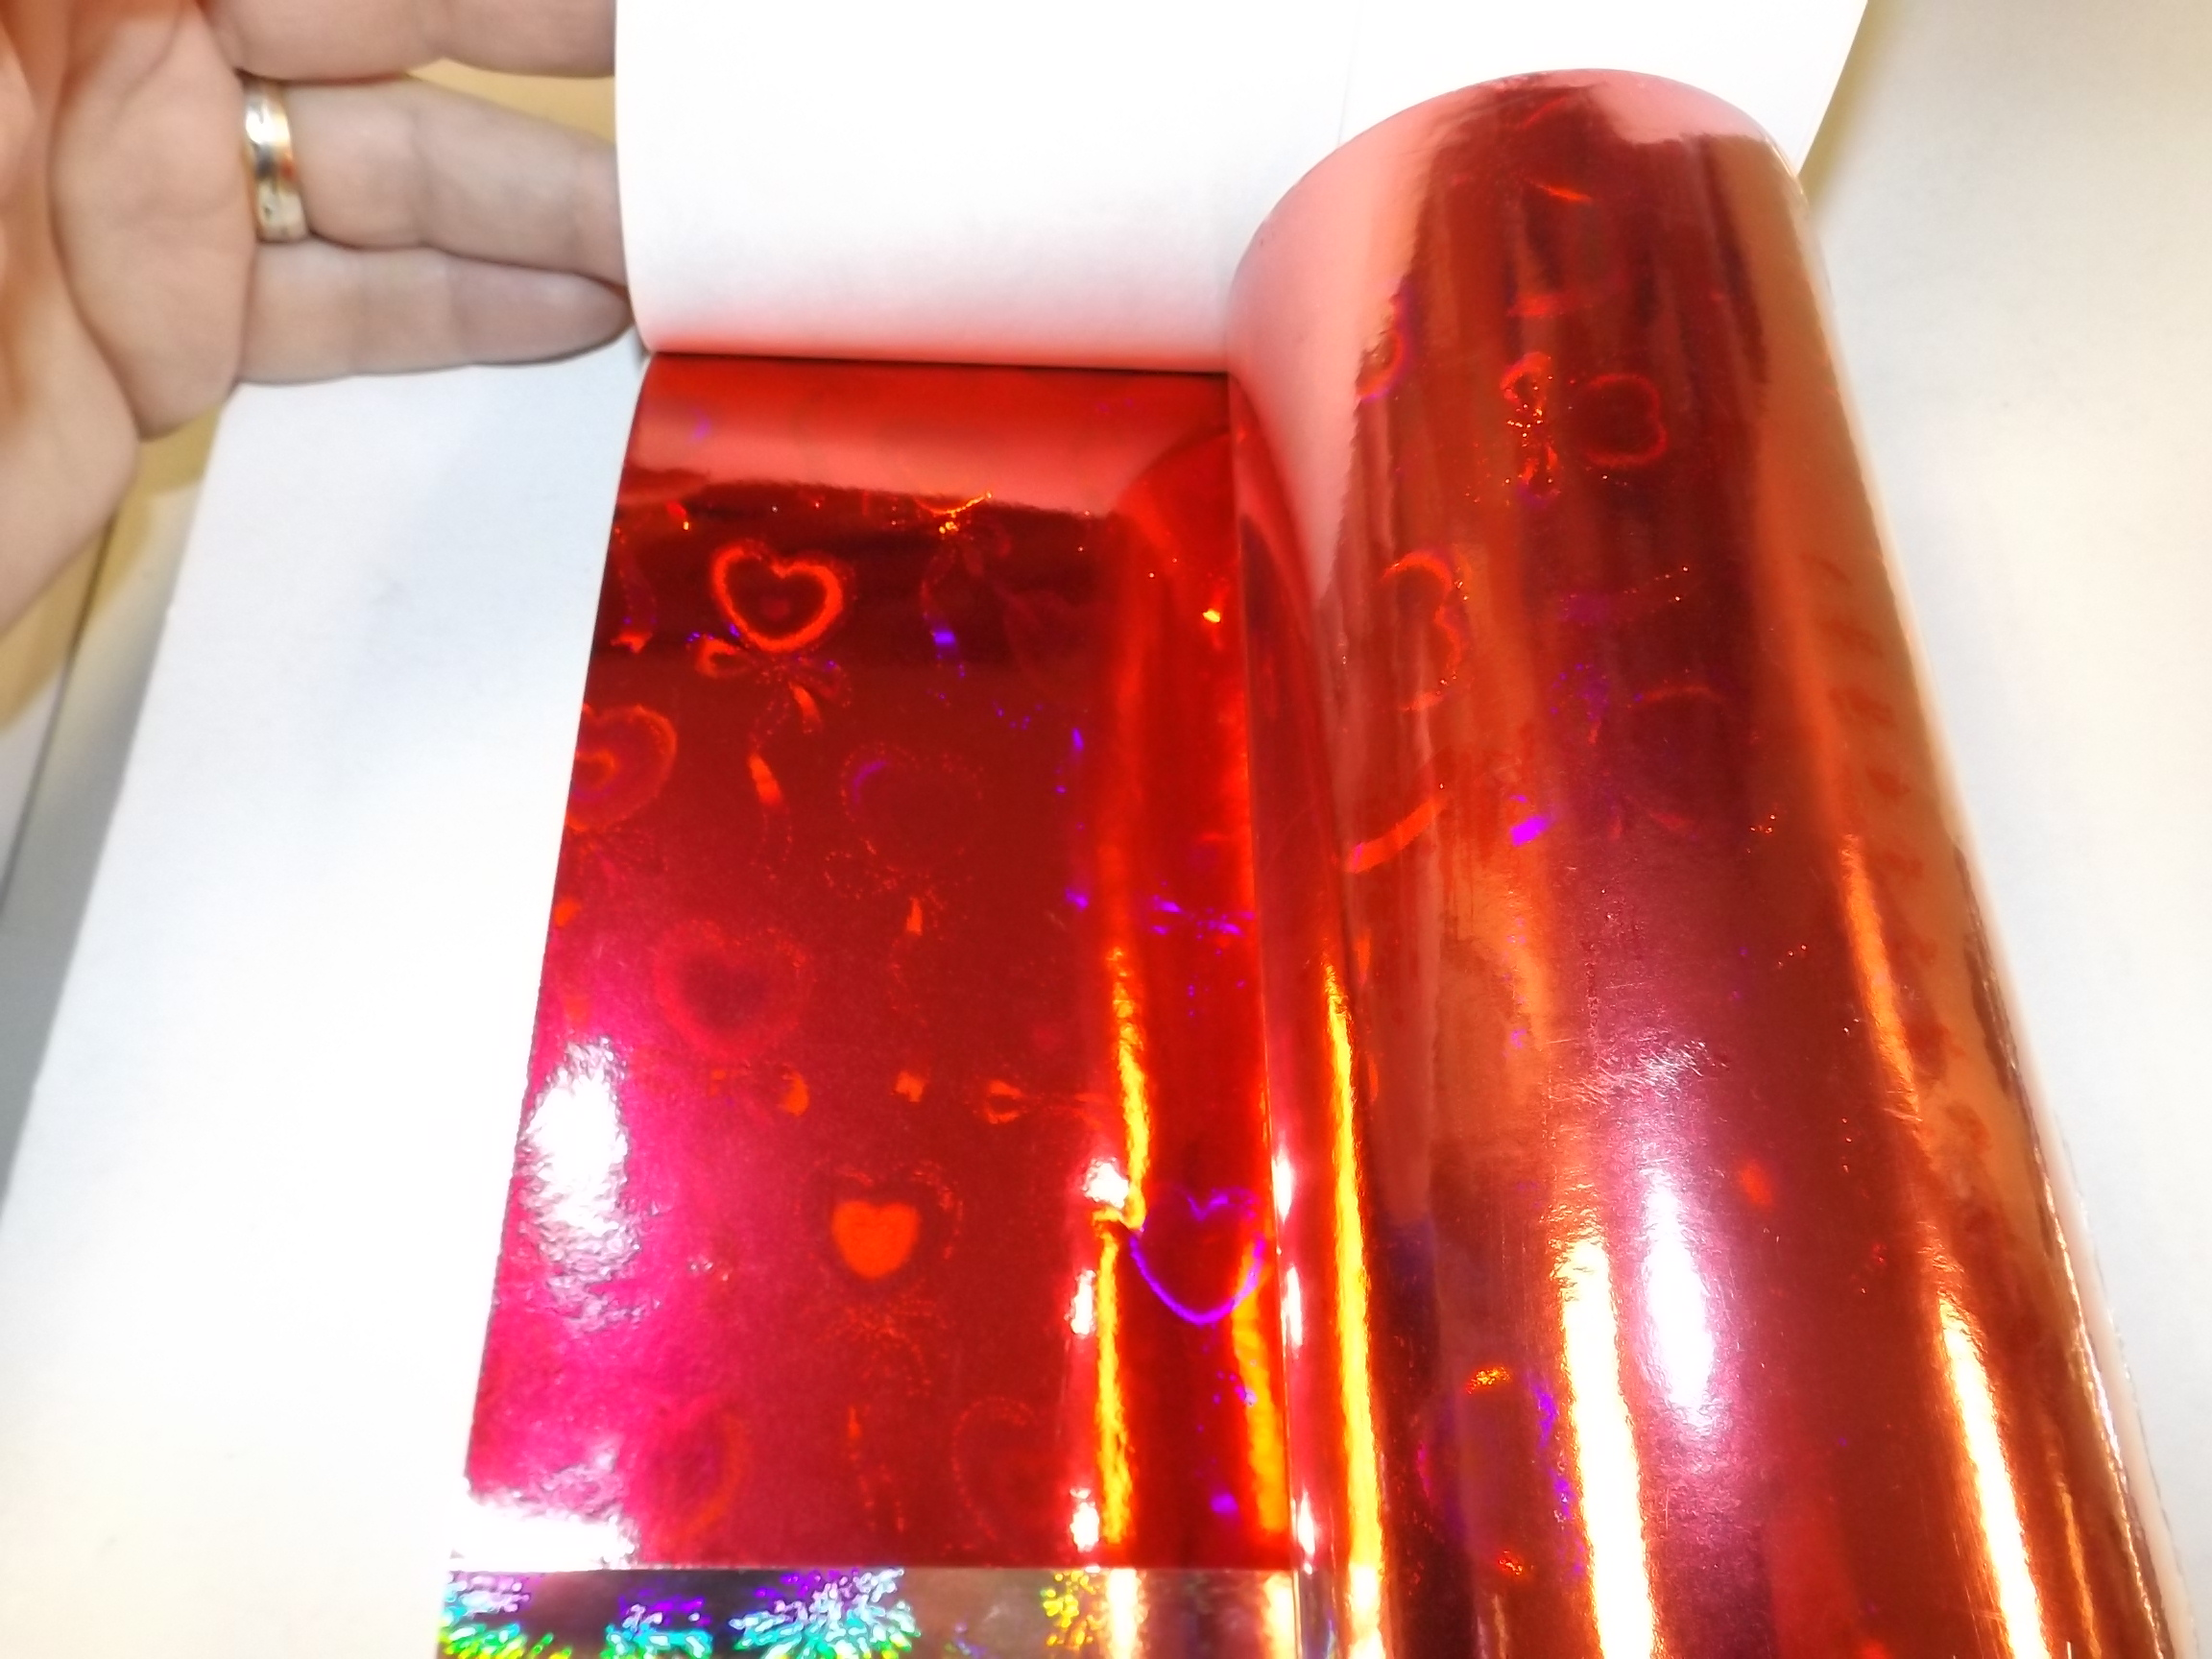 PA099 Jewelers Roll- Foil Red Hearts- Holographic-New!